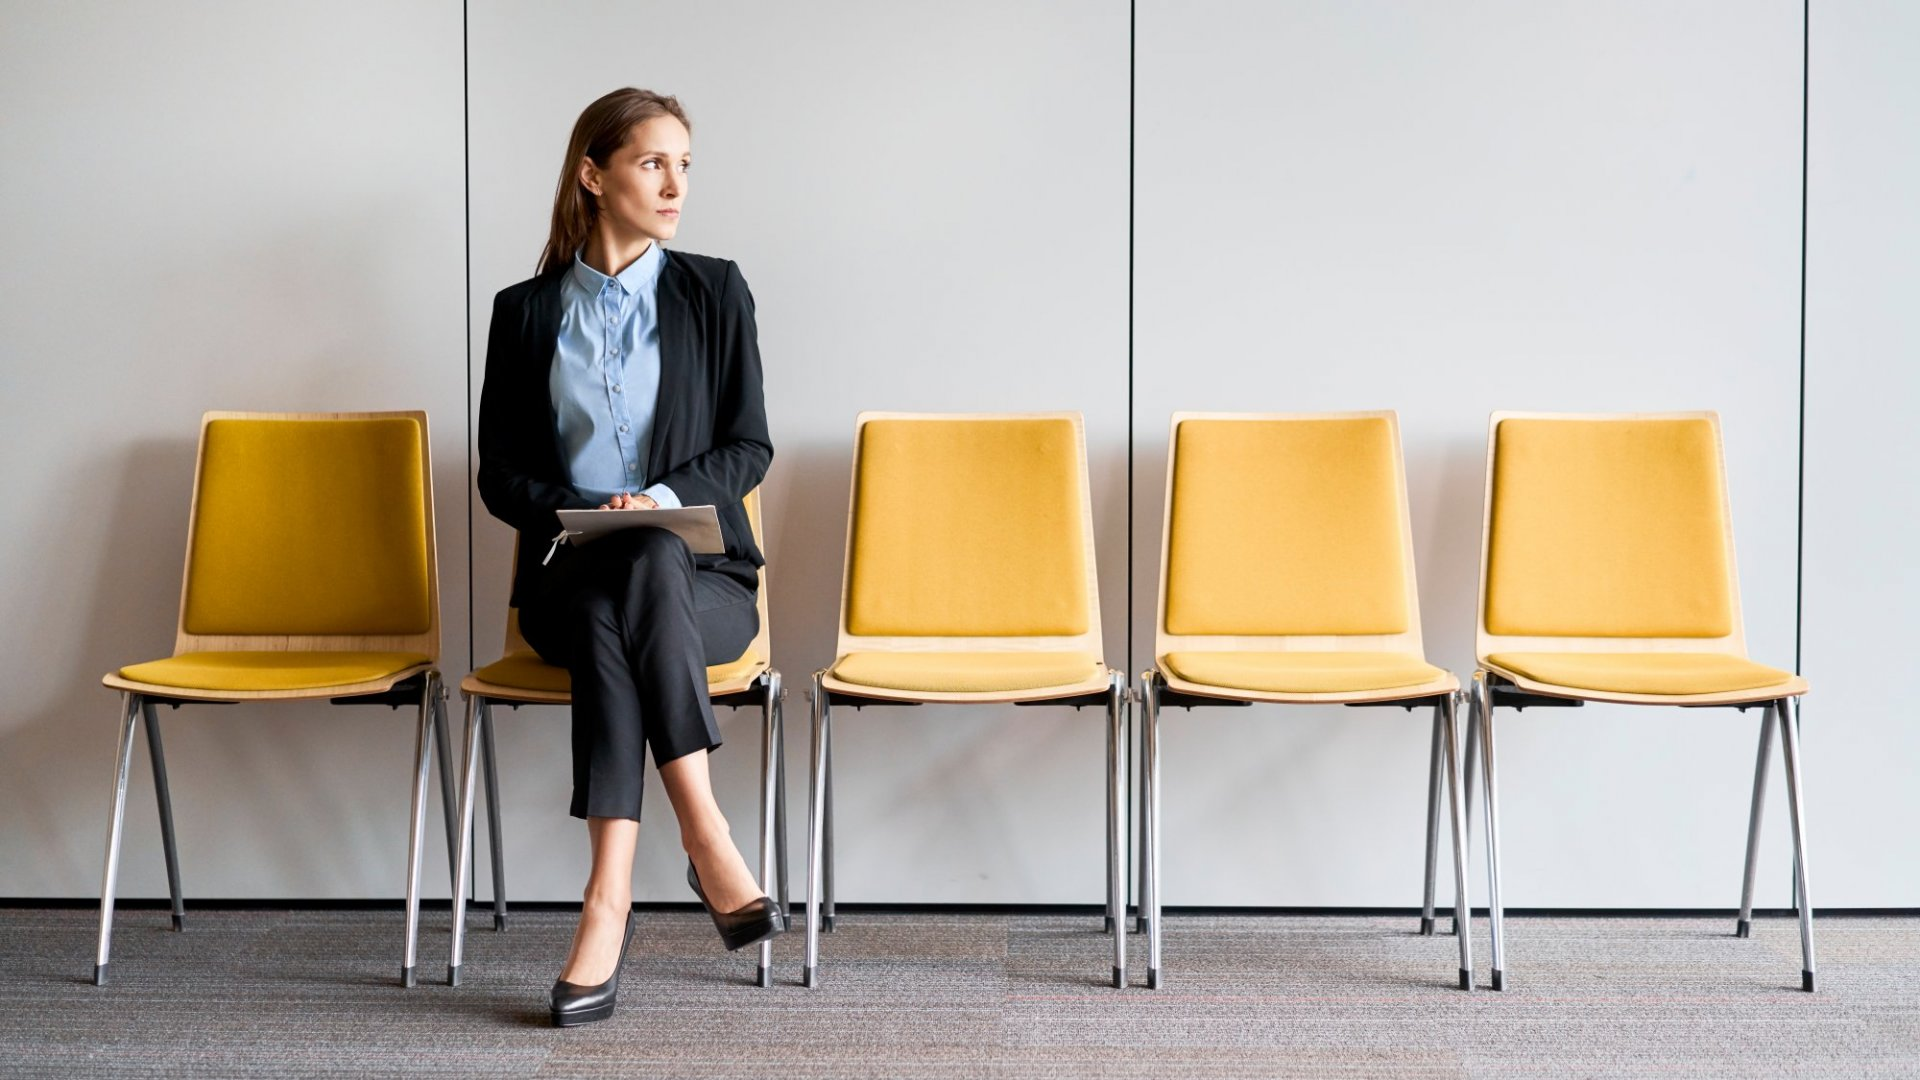 Want to Attract More Qualified Job Applicants? Stop Using These 2 Words in Your Job Postings